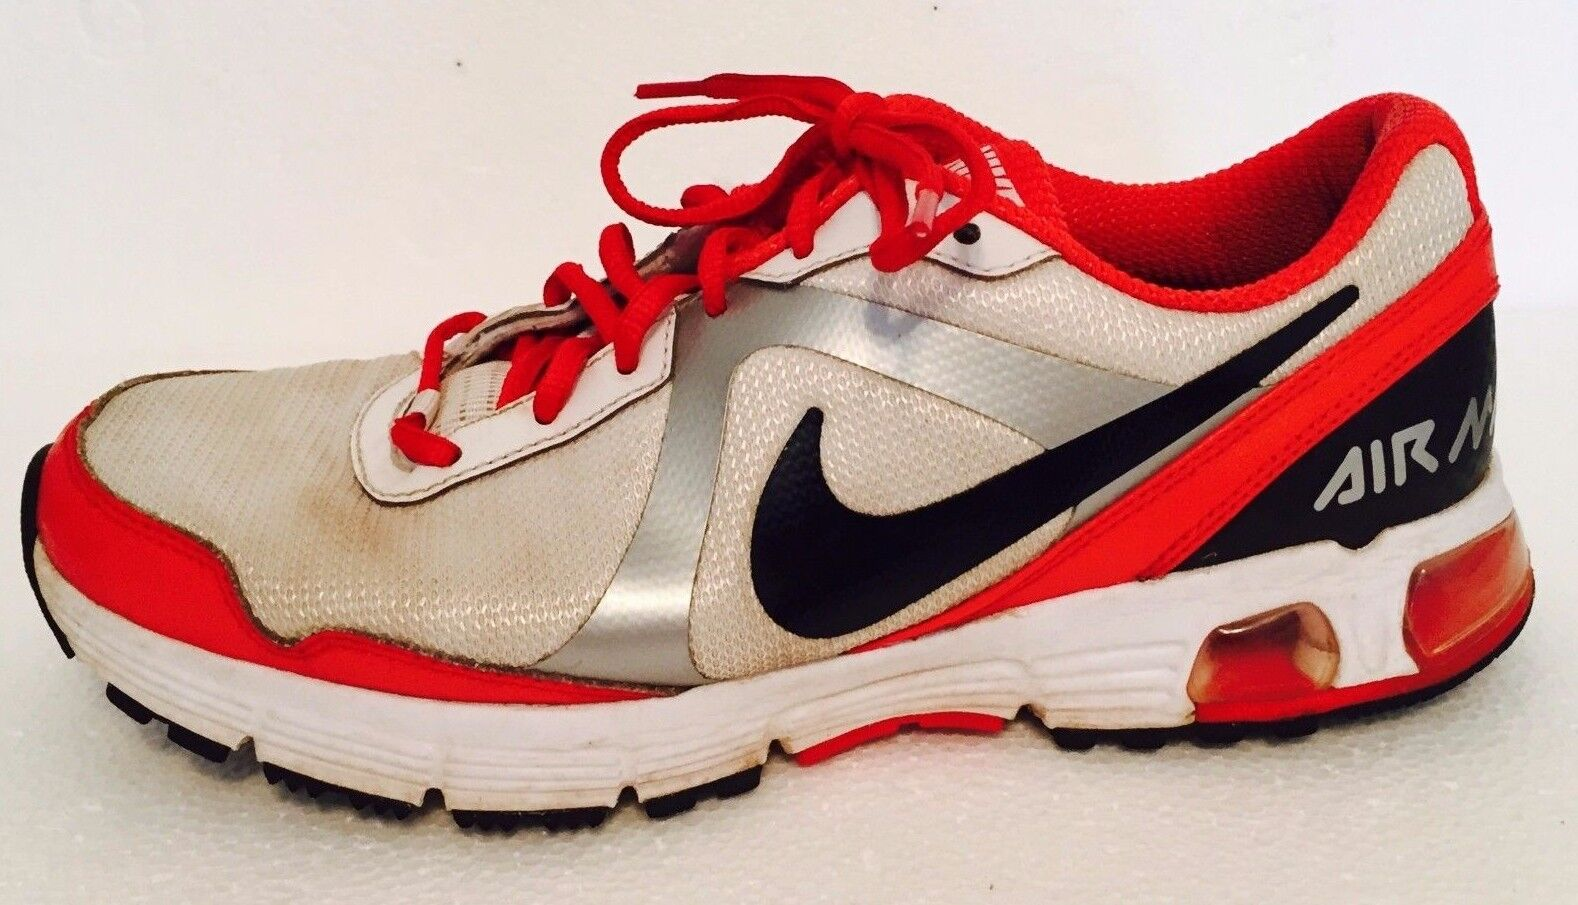 Nike Air Max Sz 8.5 Red & White Running Shoes Sneakers The most popular shoes for men and women